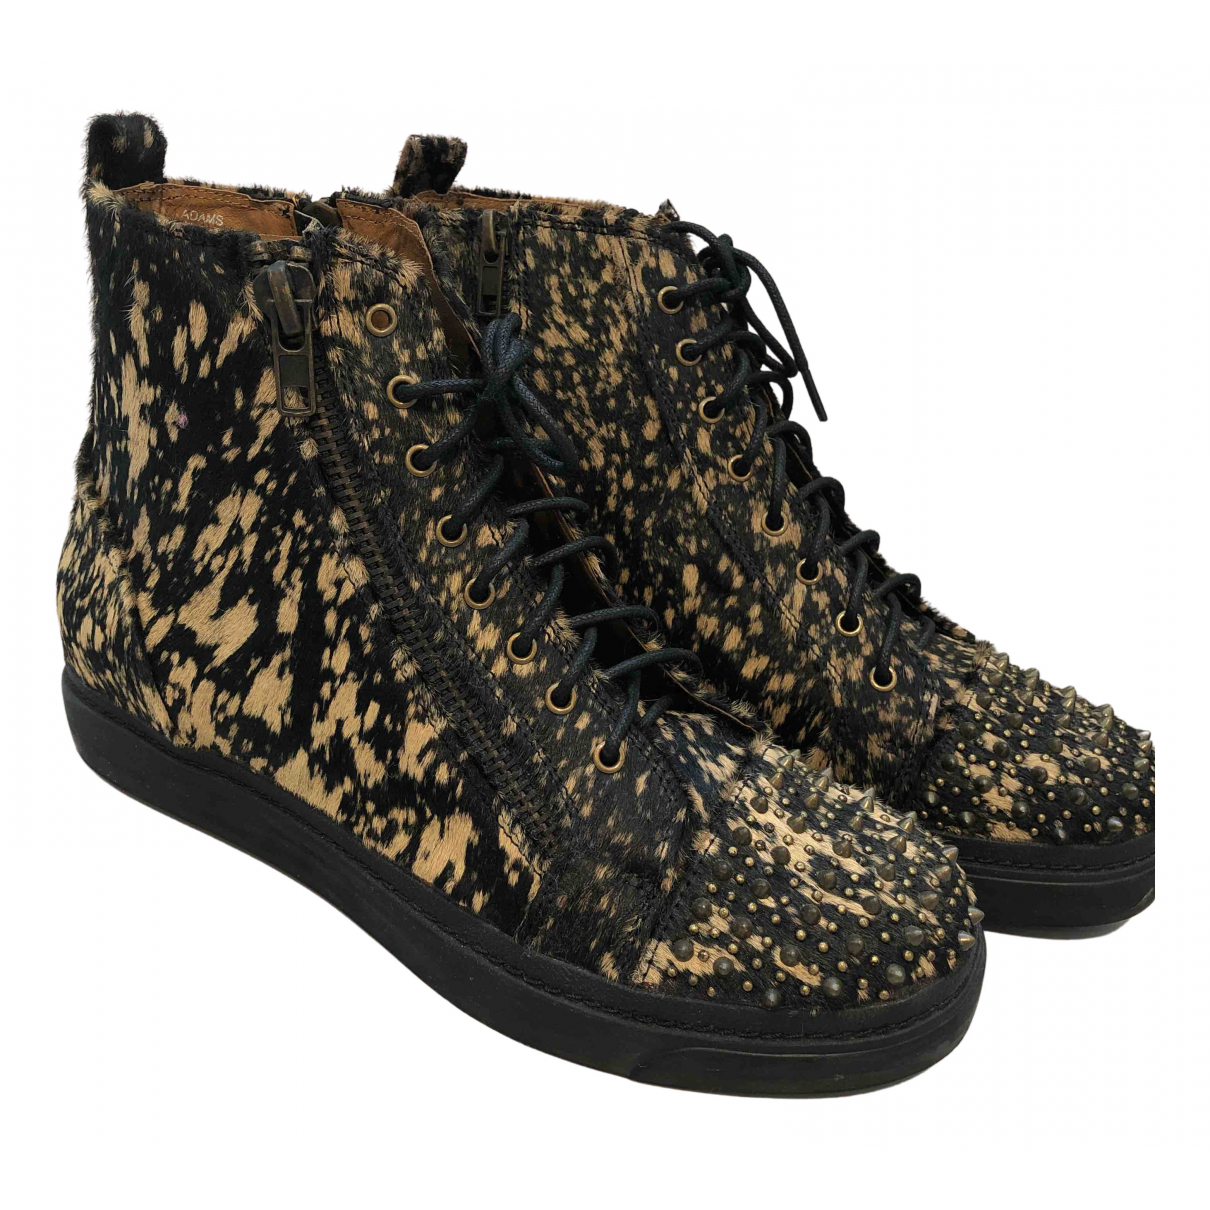 Jeffrey Campbell N Multicolour Pony-style calfskin Ankle boots for Women 40 EU